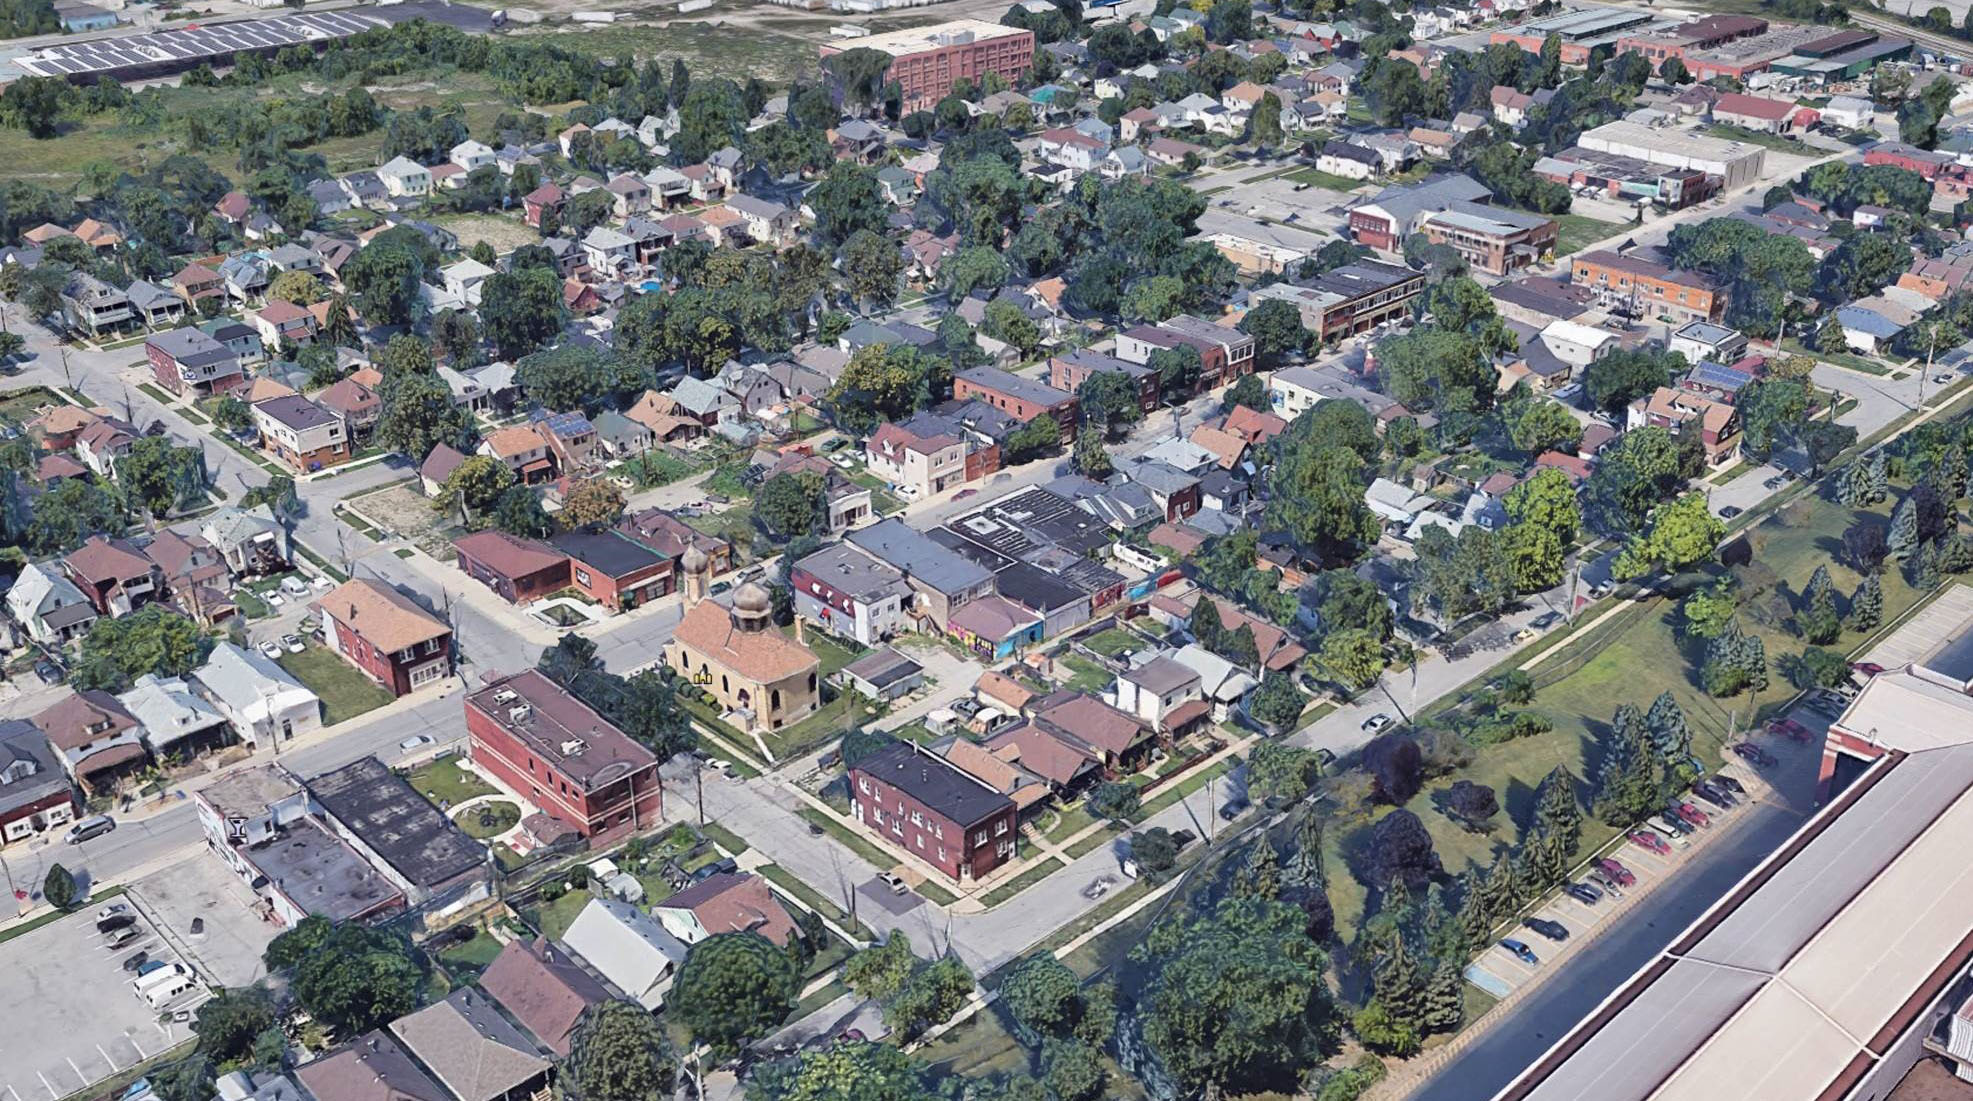 Overhead view of Ford City